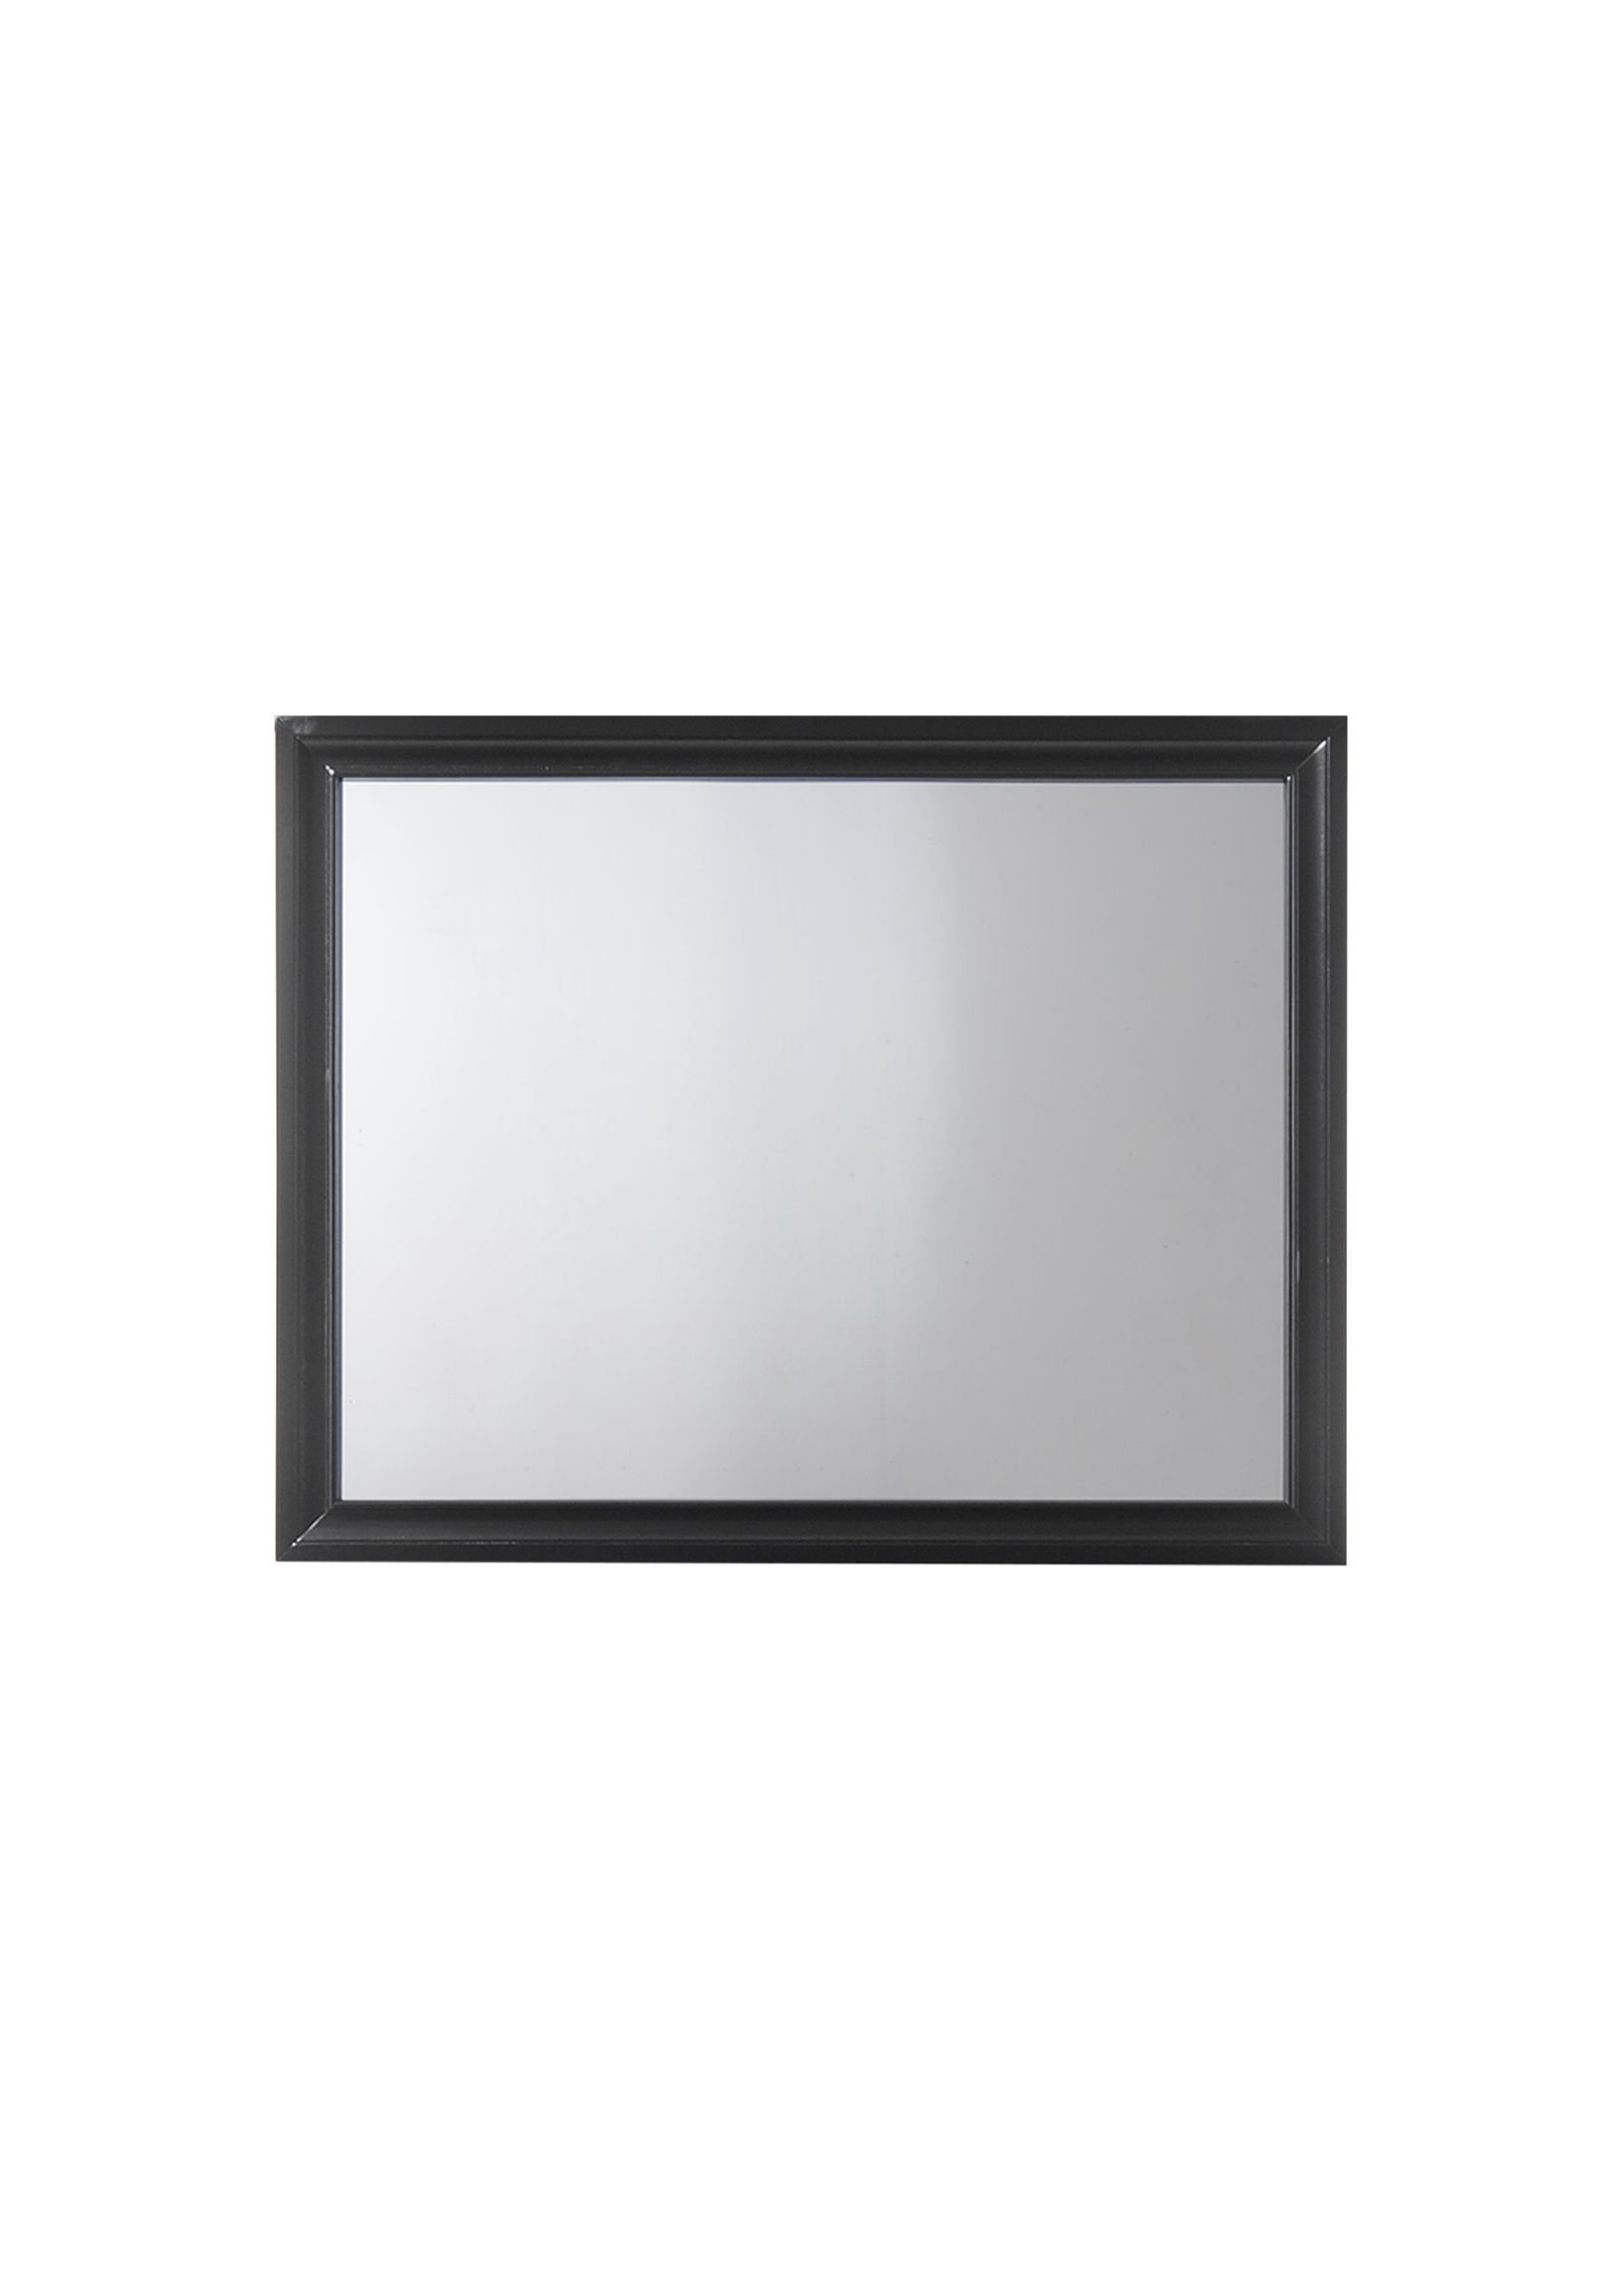 Acme Furniture 25904 Naima Mirror, Black